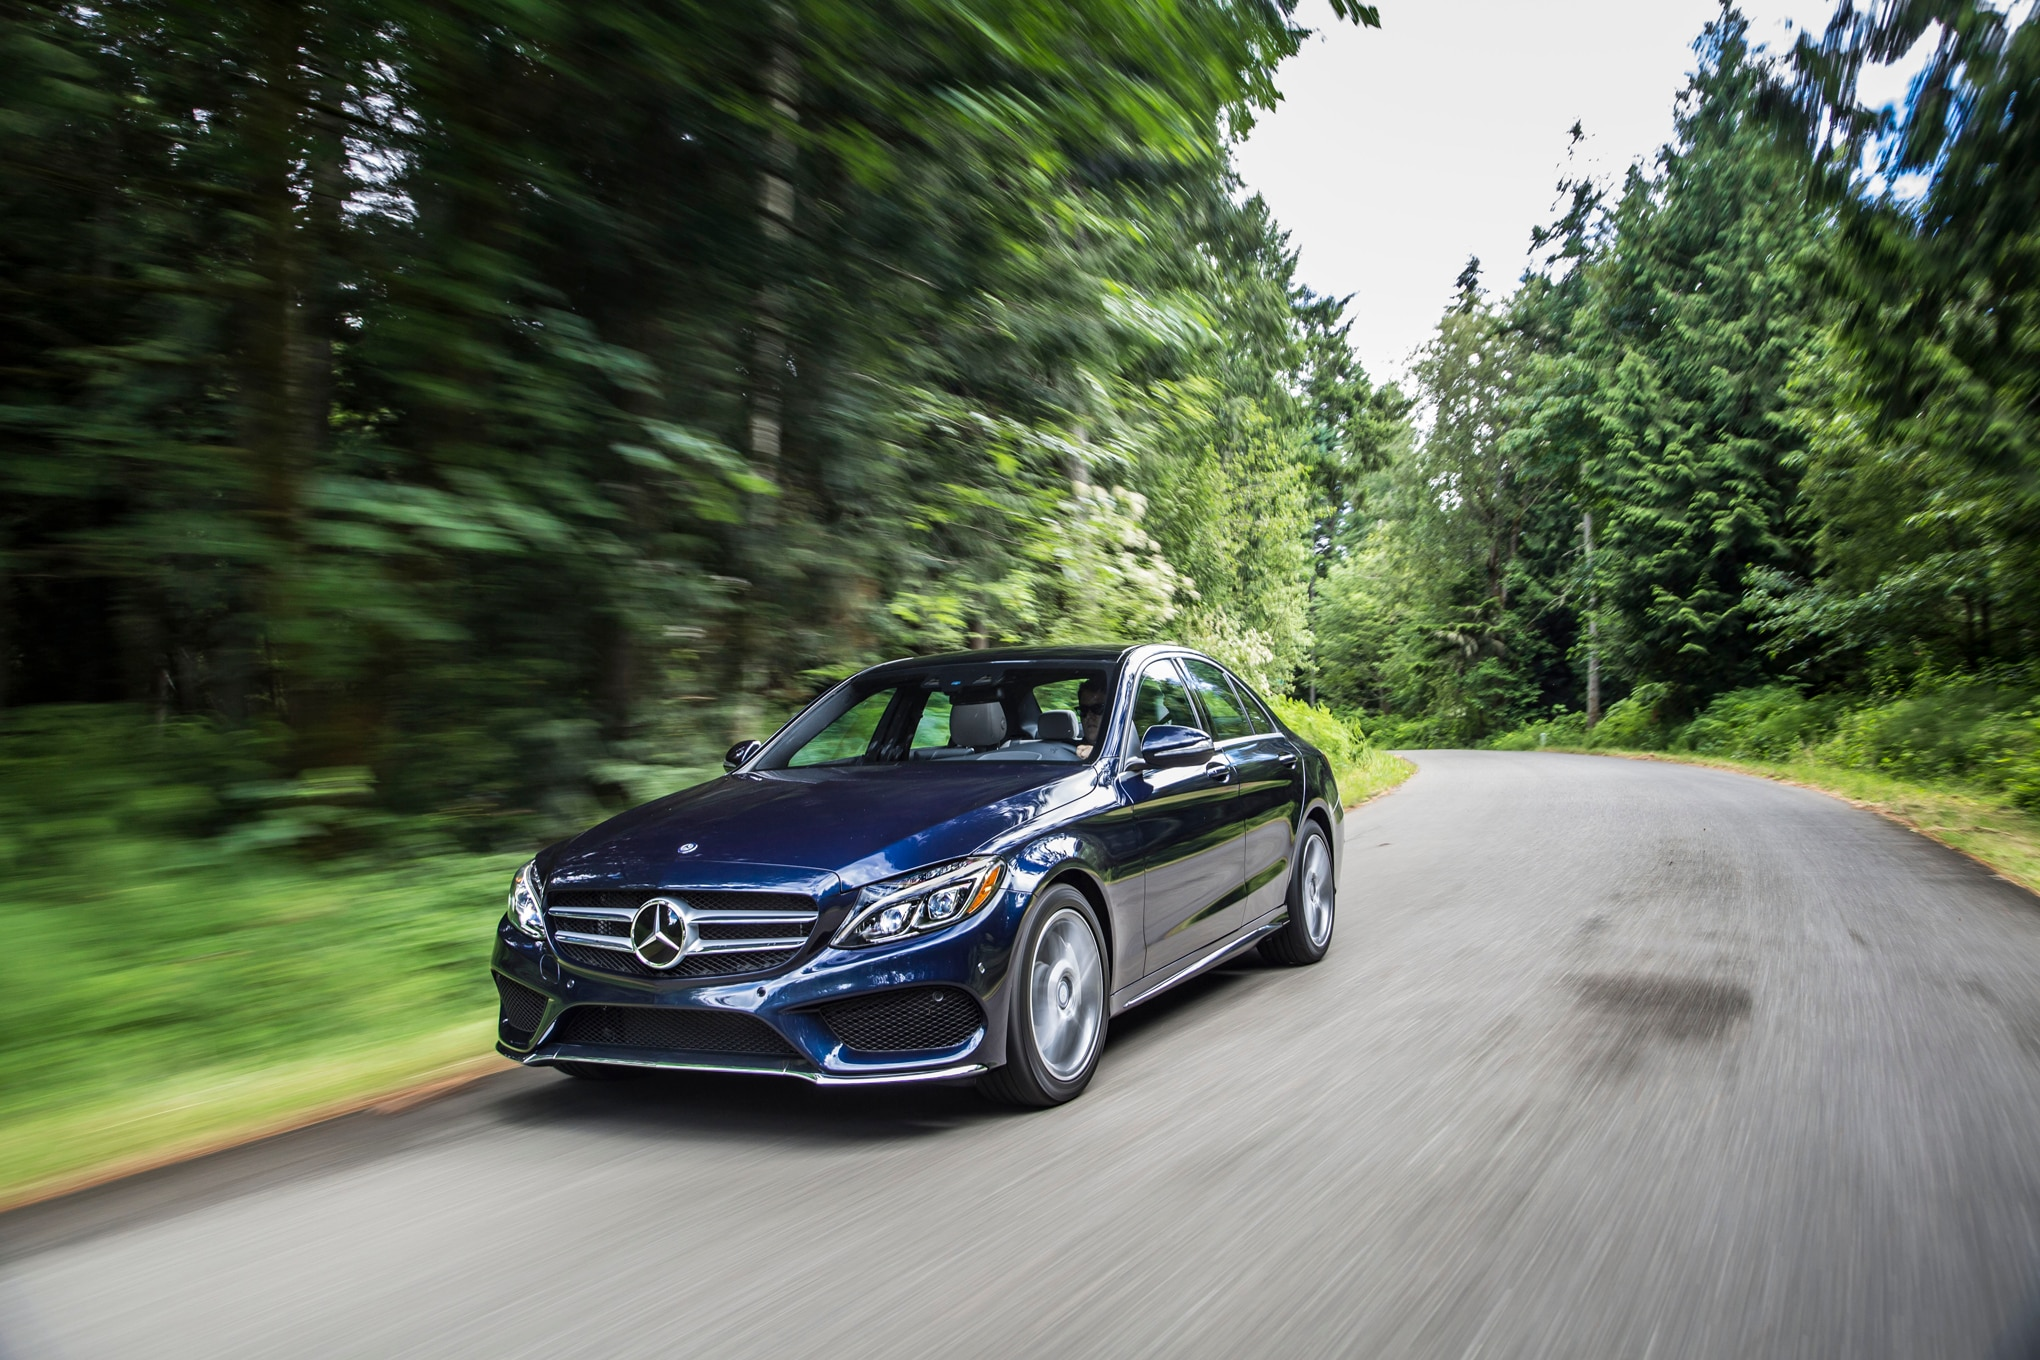 2015 Mercedes Benz C400 4Matic Front Three Quarter In Motion 051